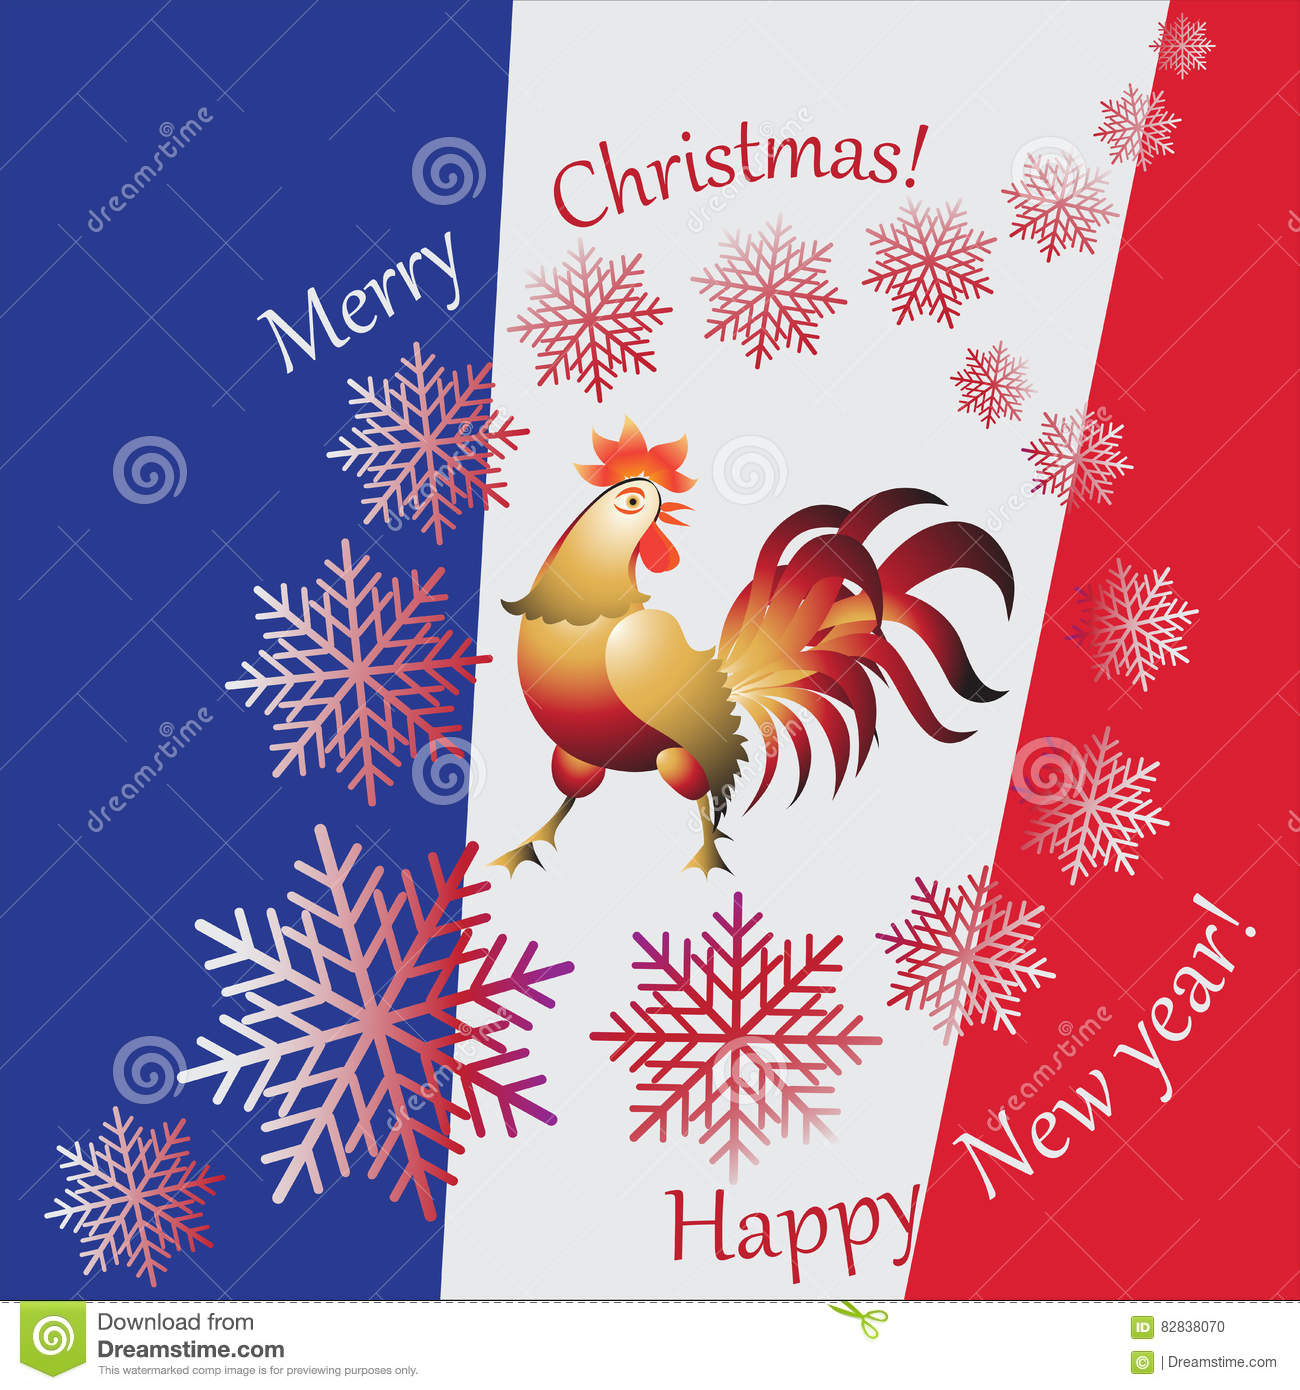 Christmas Symbols Of France Stock Vector Illustration Of Blue